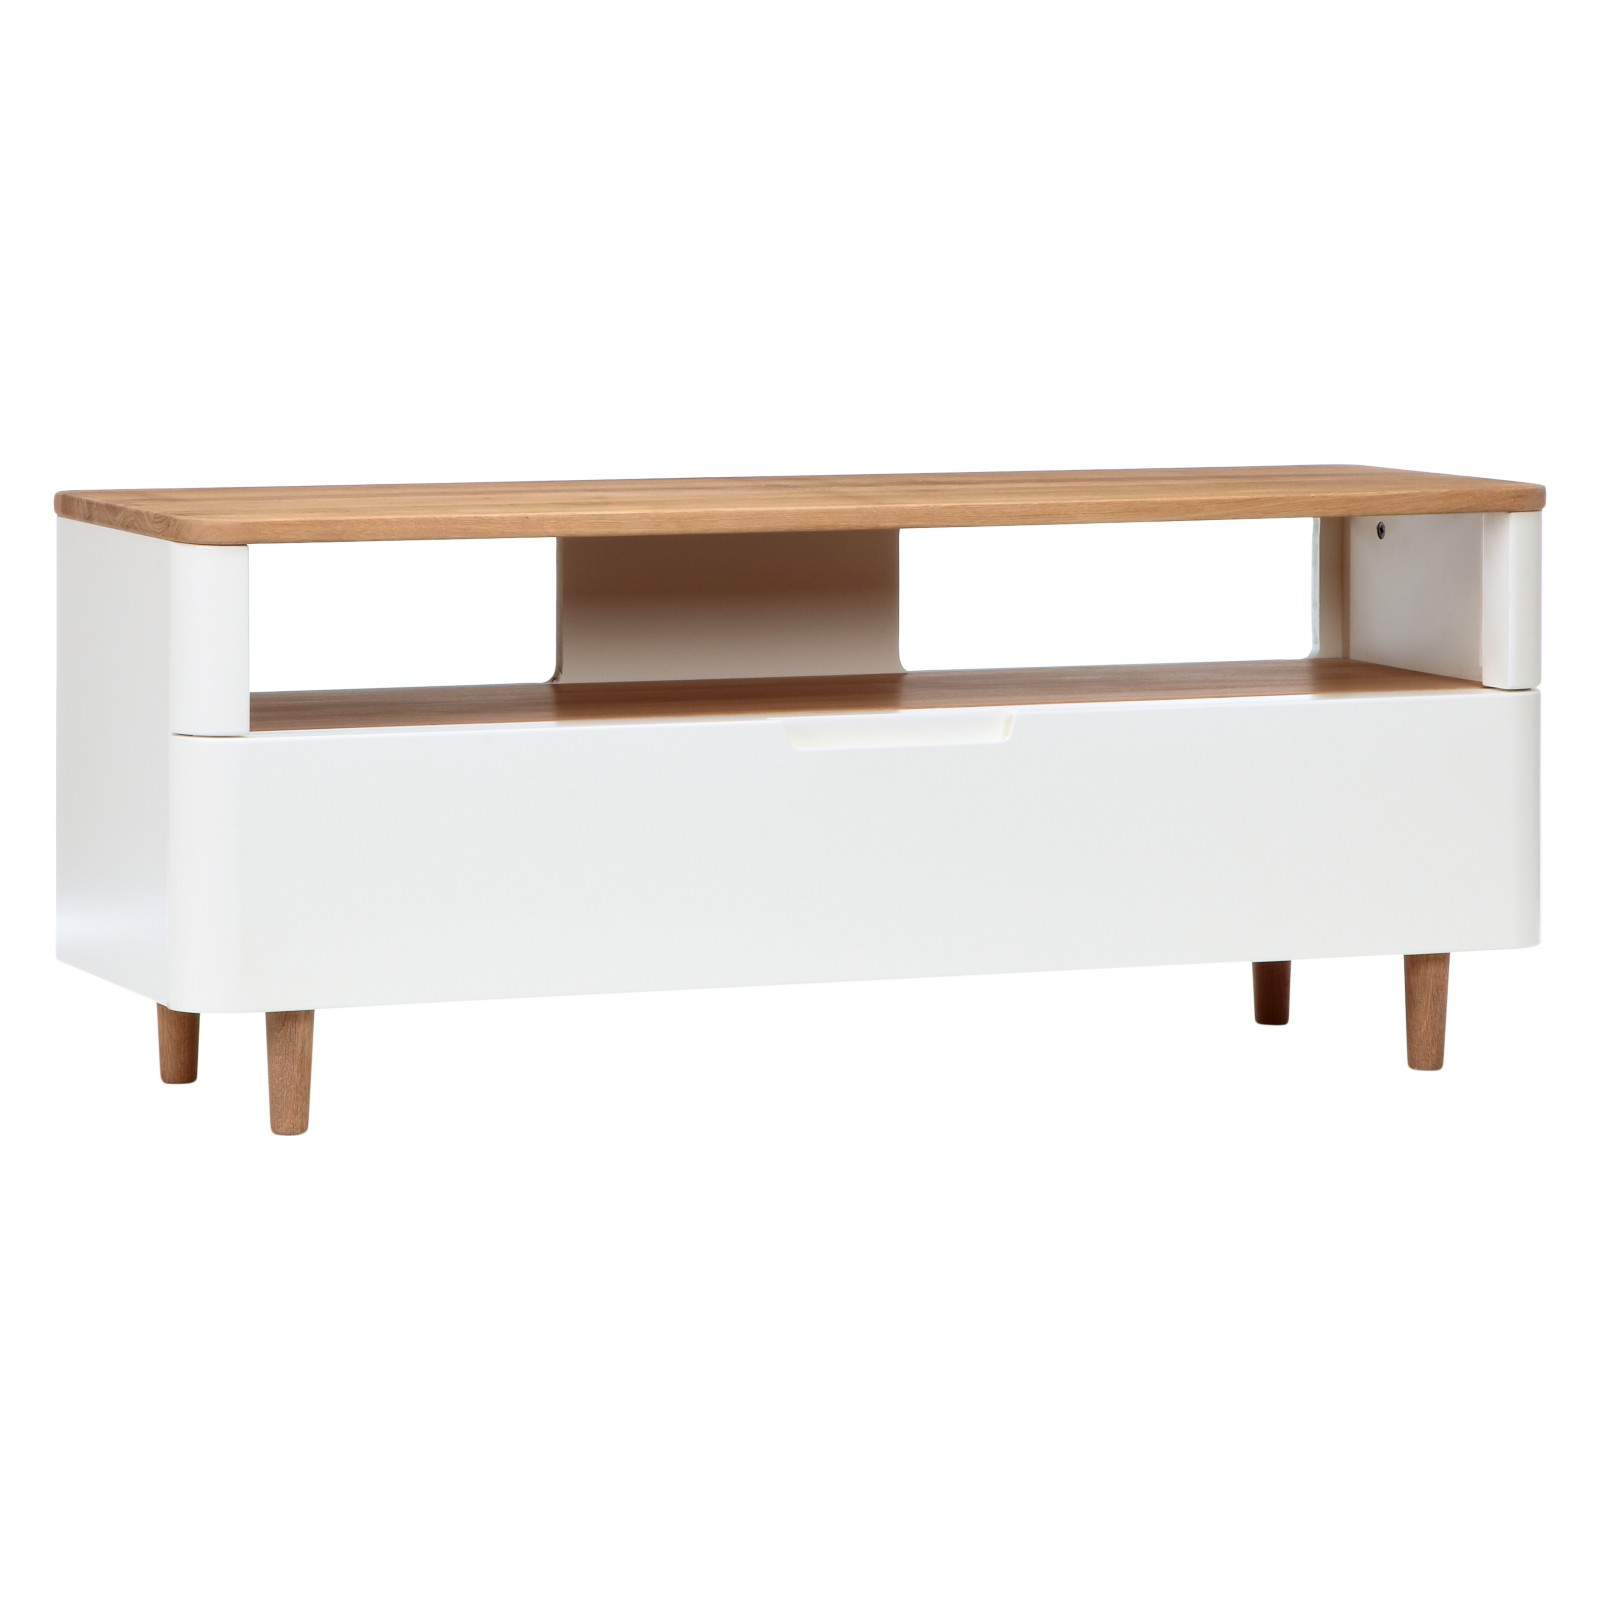 Ebbe gehl for john lewis mira tv stand oak review best buy review for John lewis home design service reviews